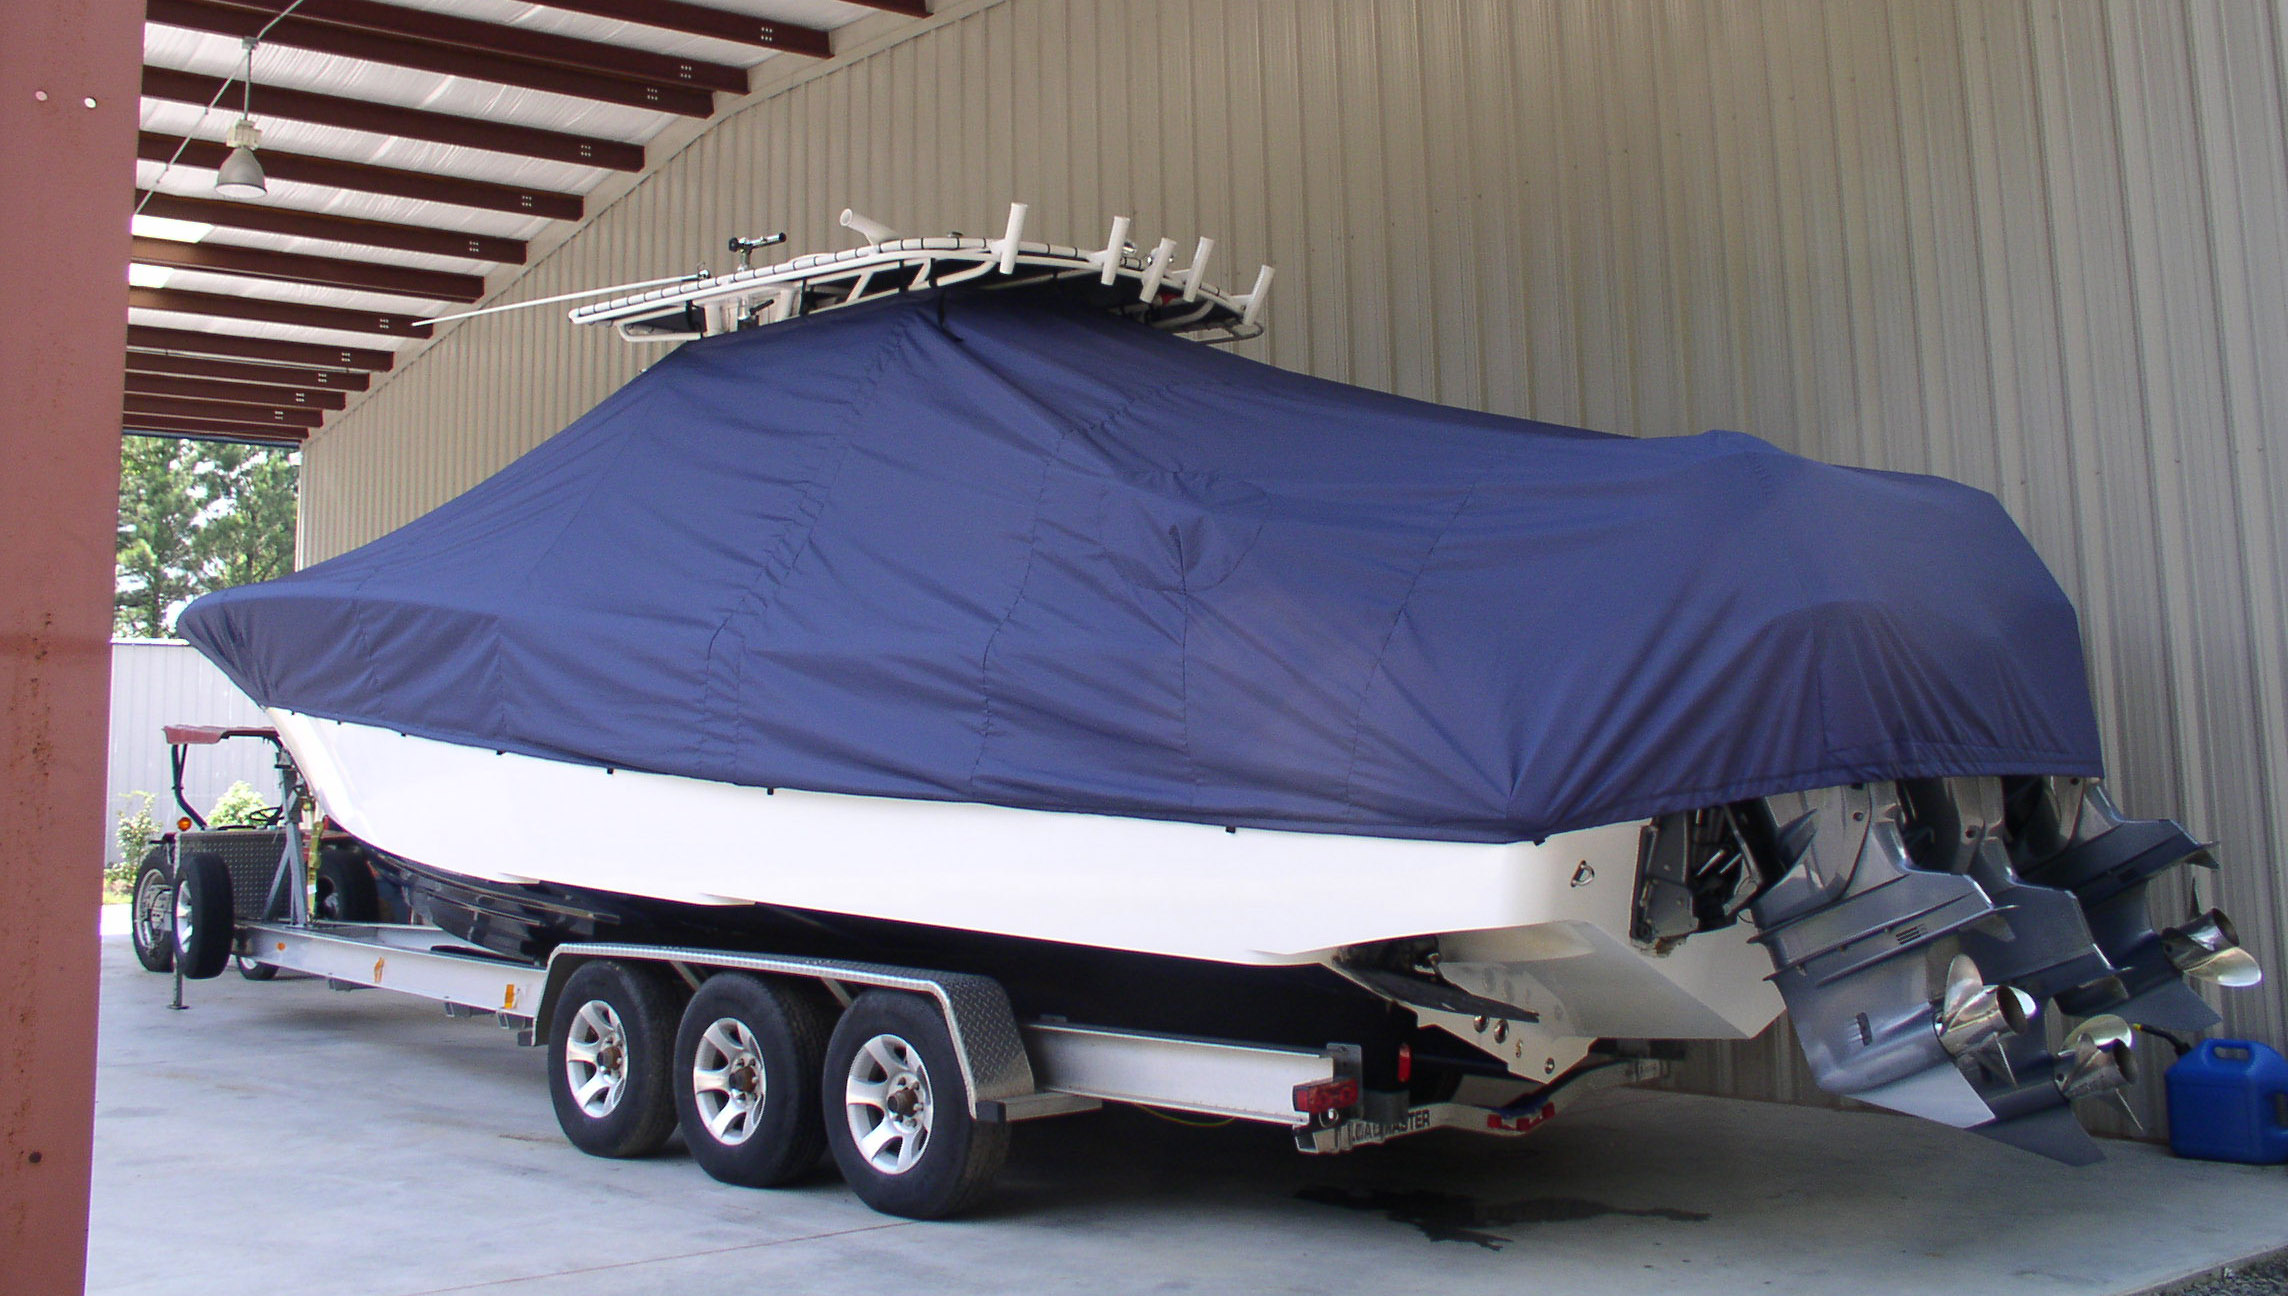 securely-fastened-t-top-boat-cover